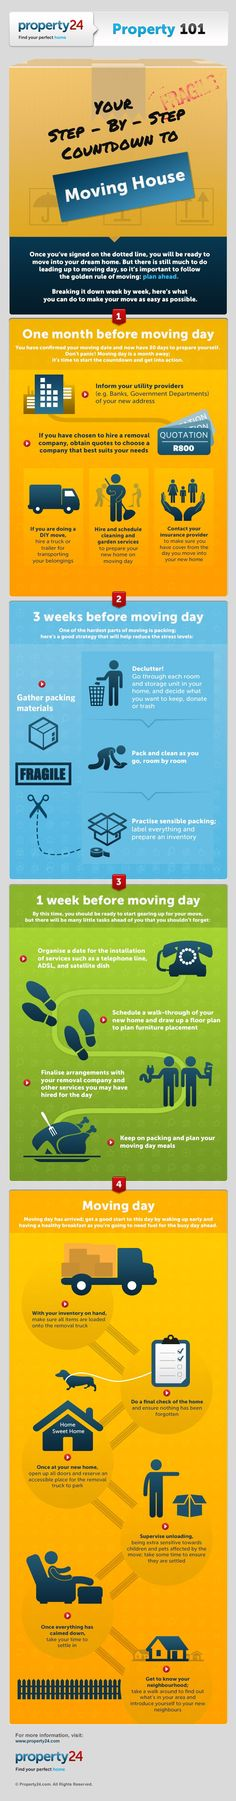 INFOGRAPHIC: A Step-by-Step Guide to Moving Home / Moving House Countdown, Property 101 Movers Guide